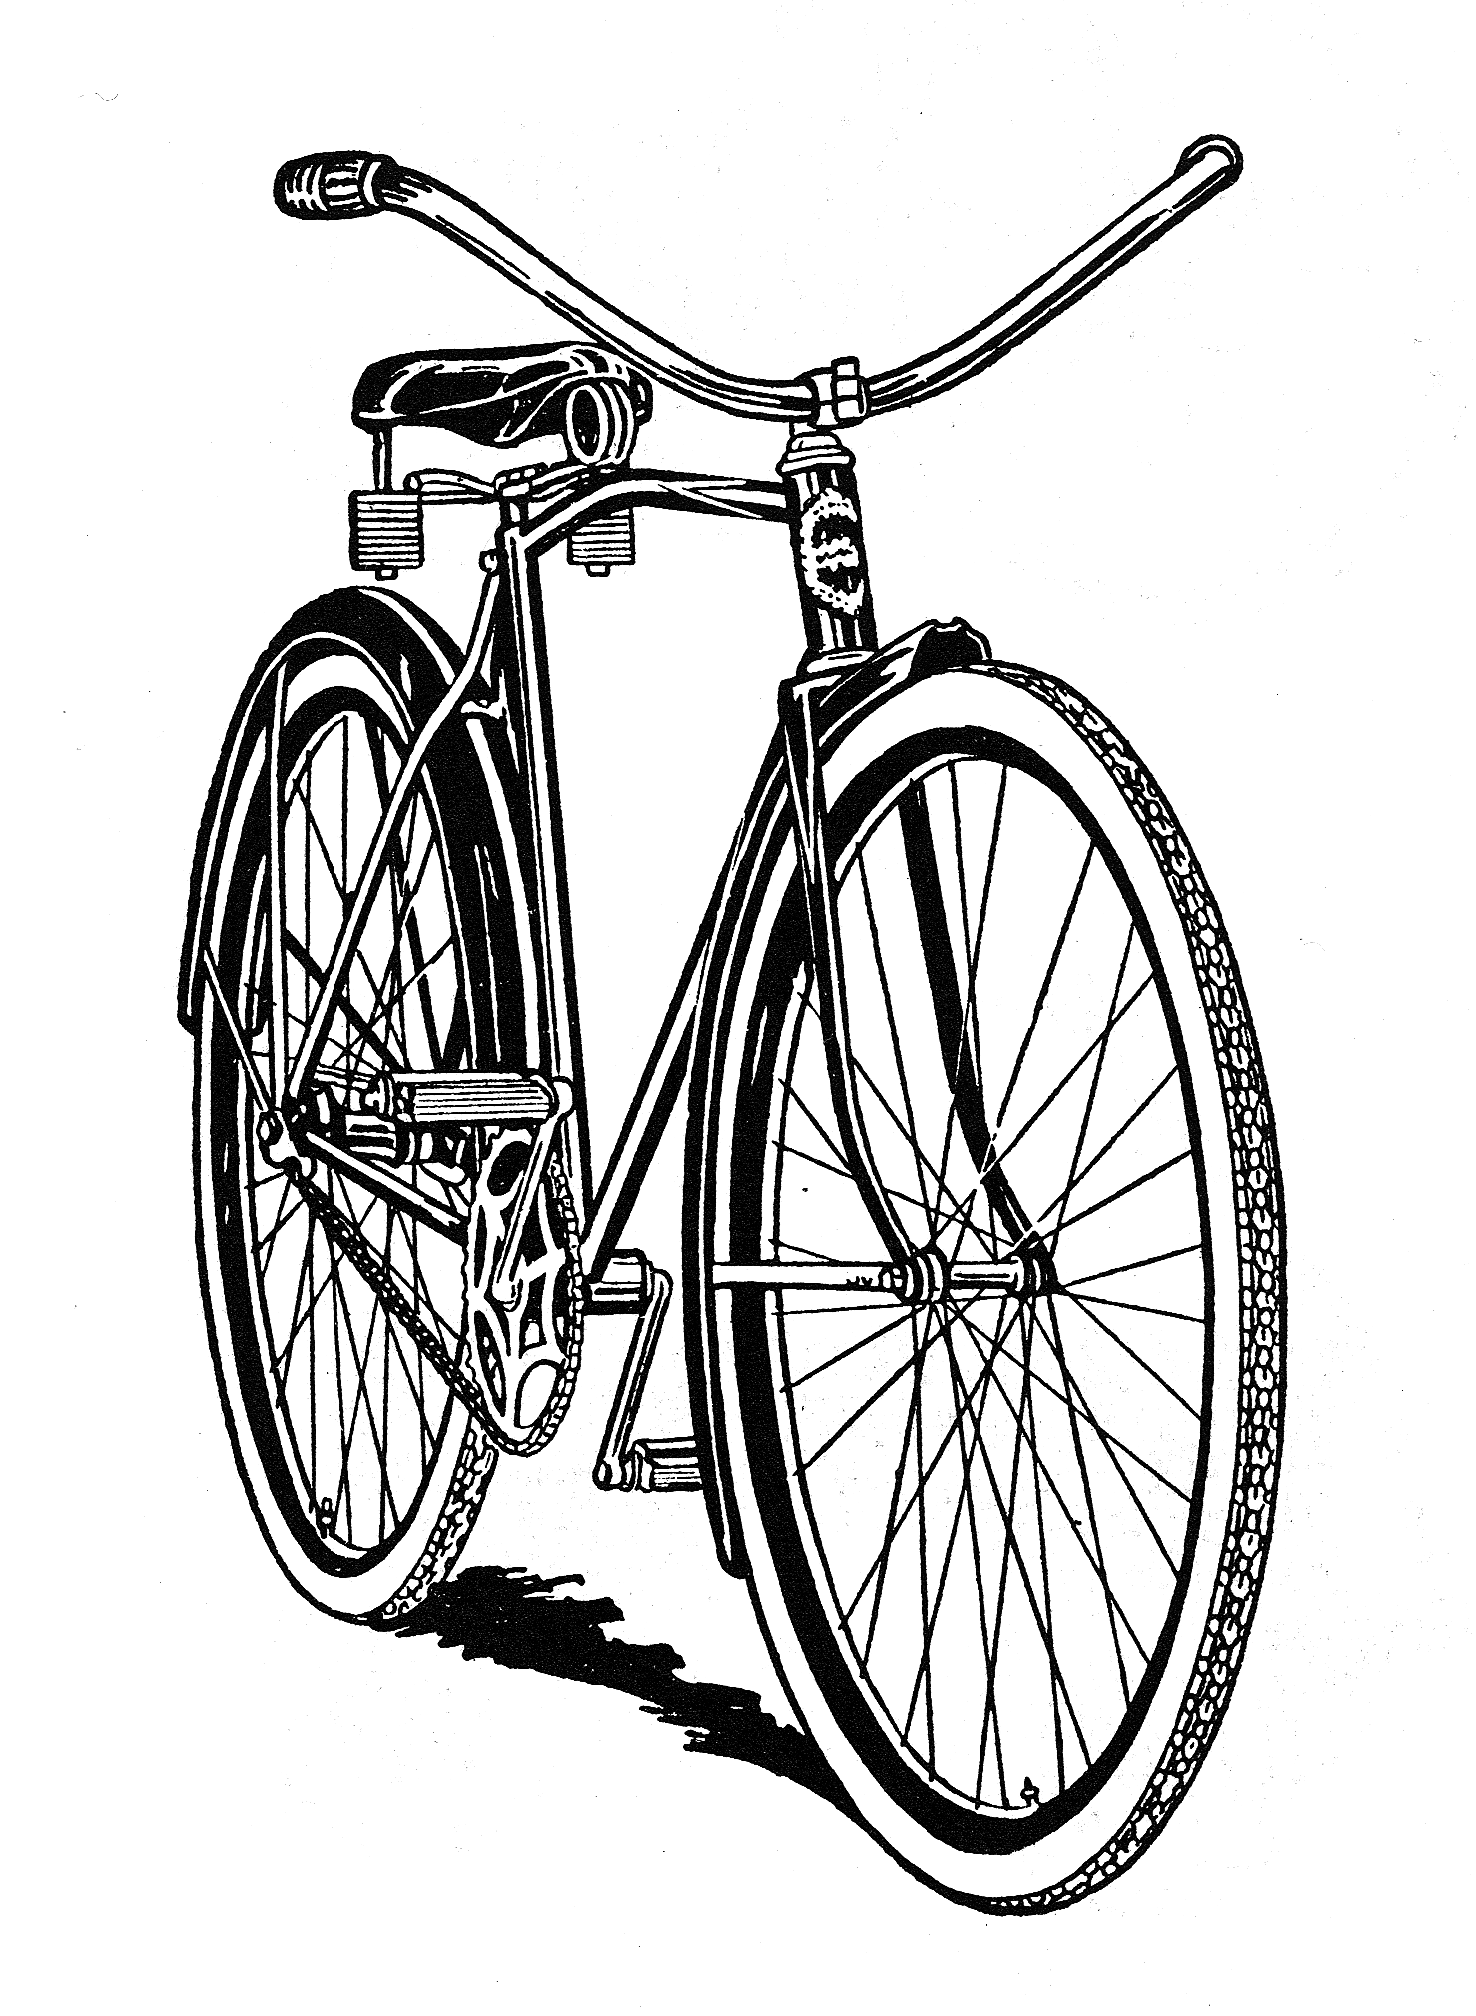 Bicycle free clip art. Biking clipart public domain